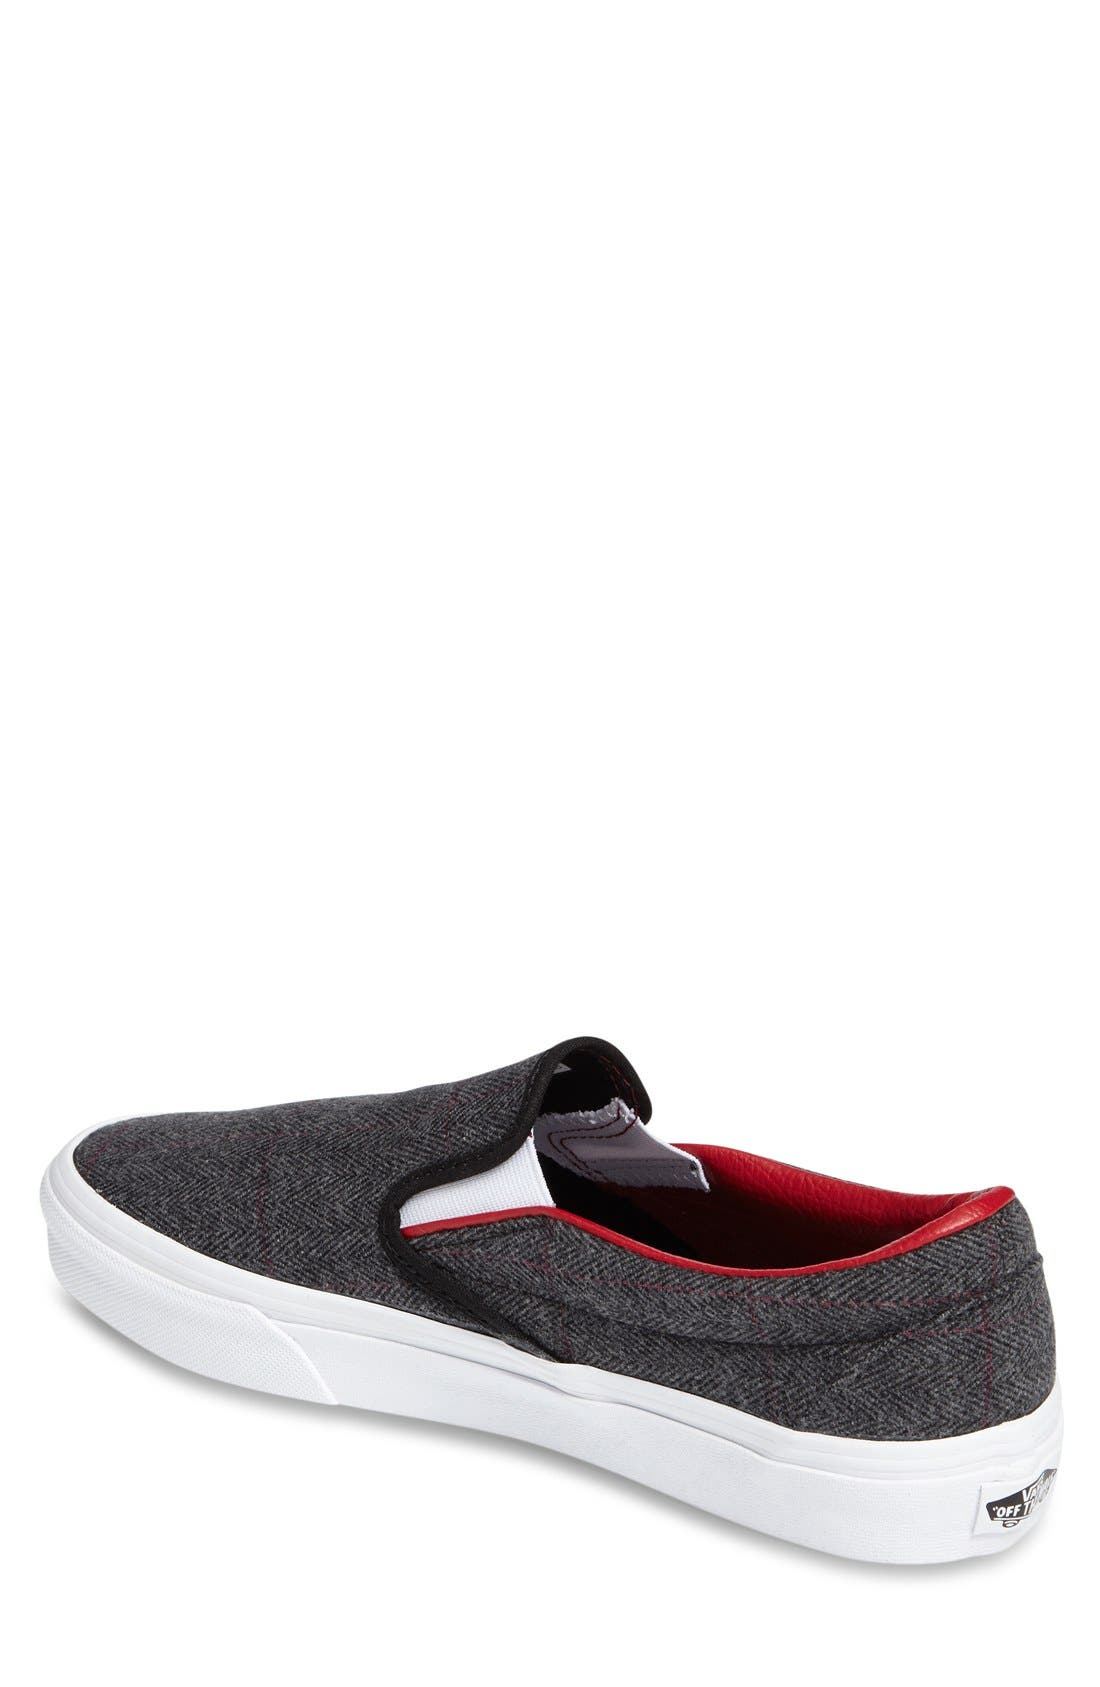 'Classic' Slip-On Sneaker,                             Alternate thumbnail 3, color,                             Black/ True White